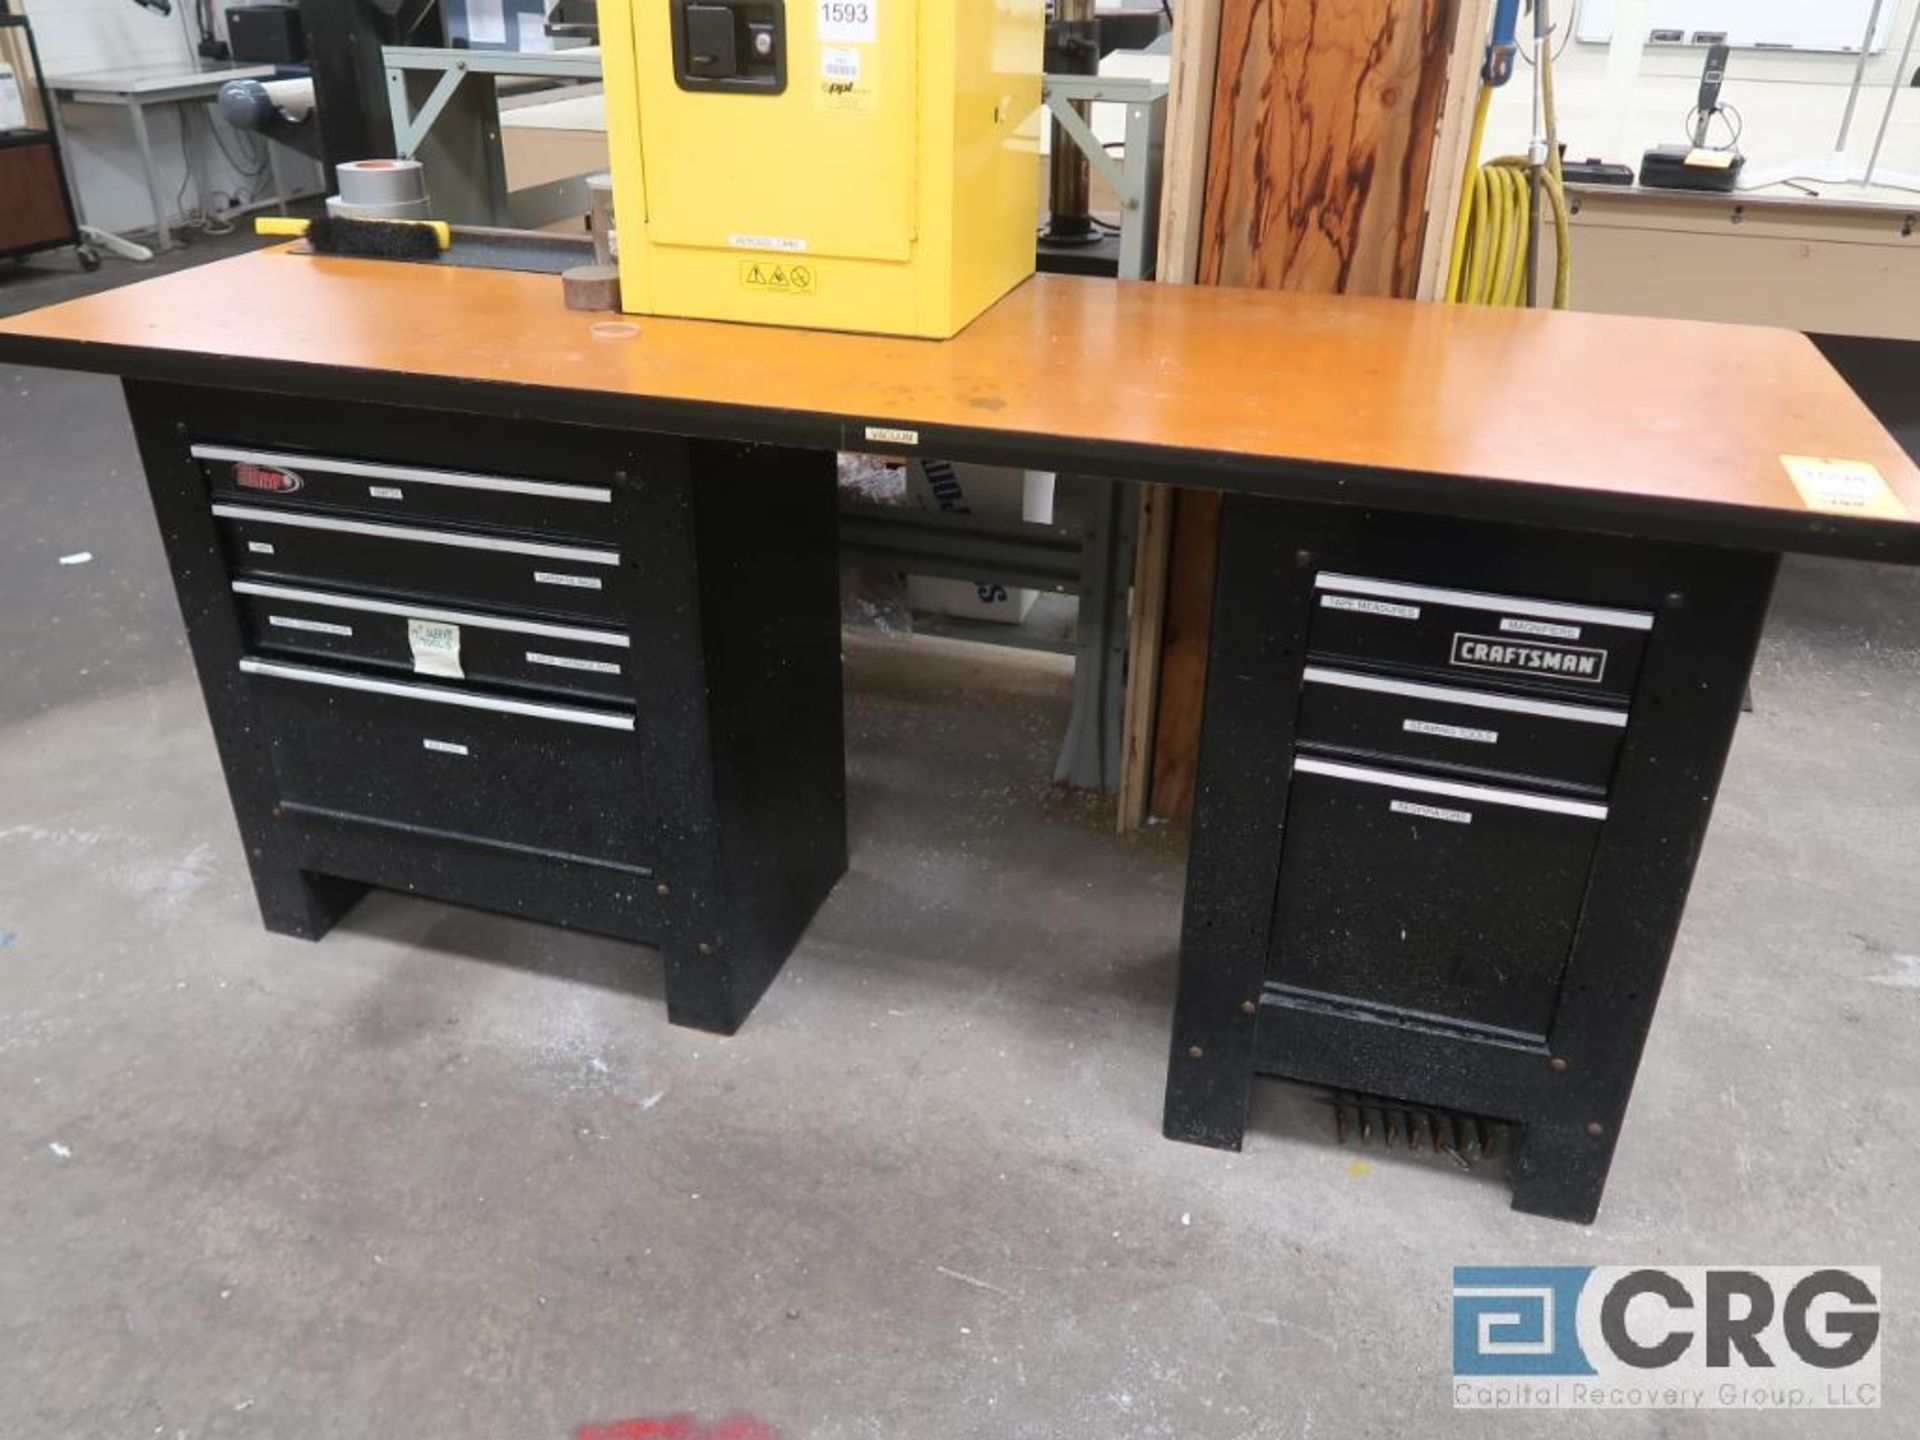 Lot including (1) Craftsman workbench with contents, (1) 3-drawer cabinet, (1) 4-drawer cabinet(